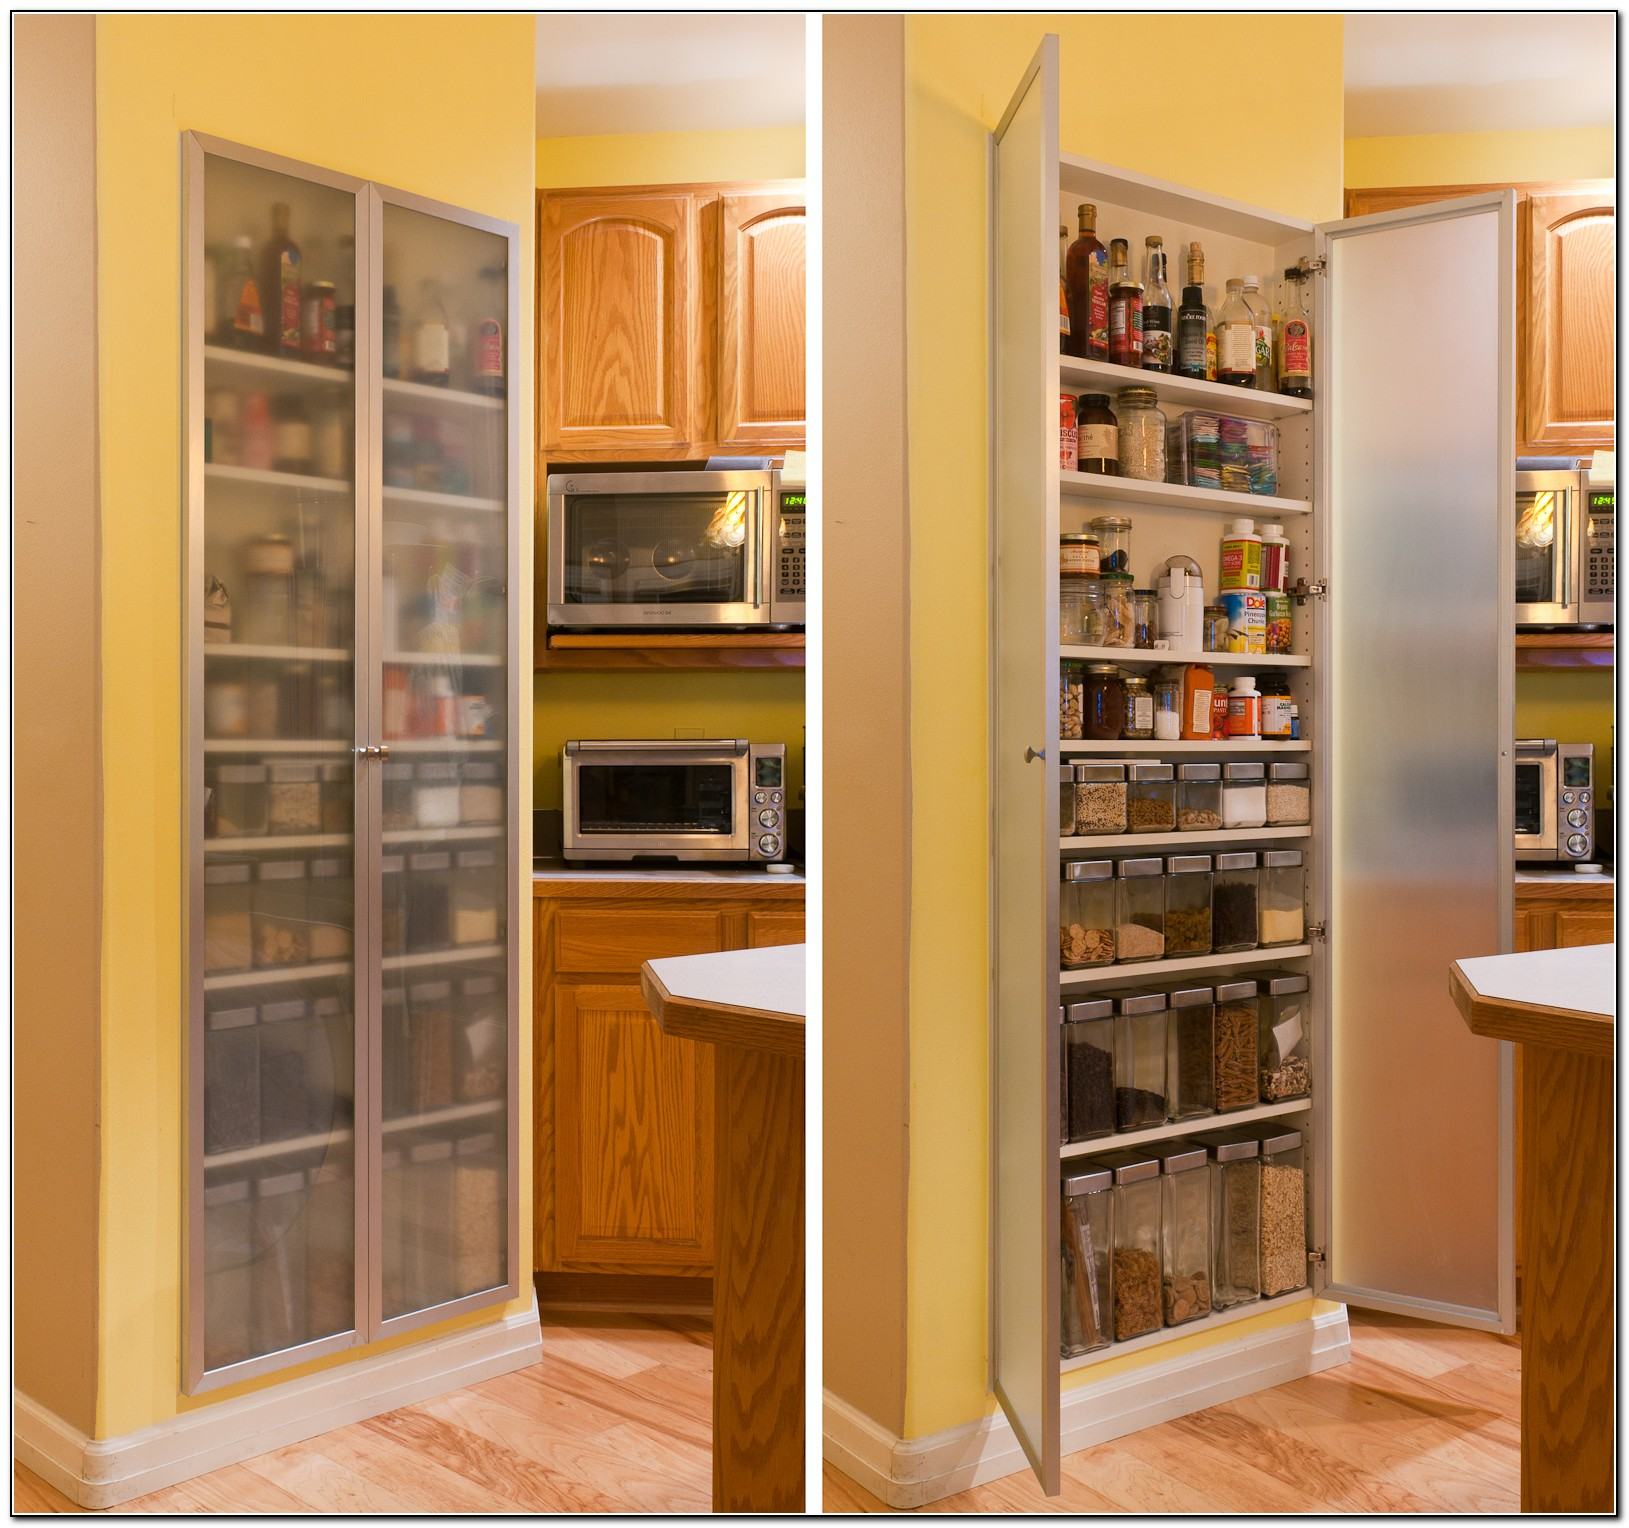 Kitchen pantry cabinet freestanding download page home design ideas galleries home design - Kitchen pantry cabinets freestanding ...